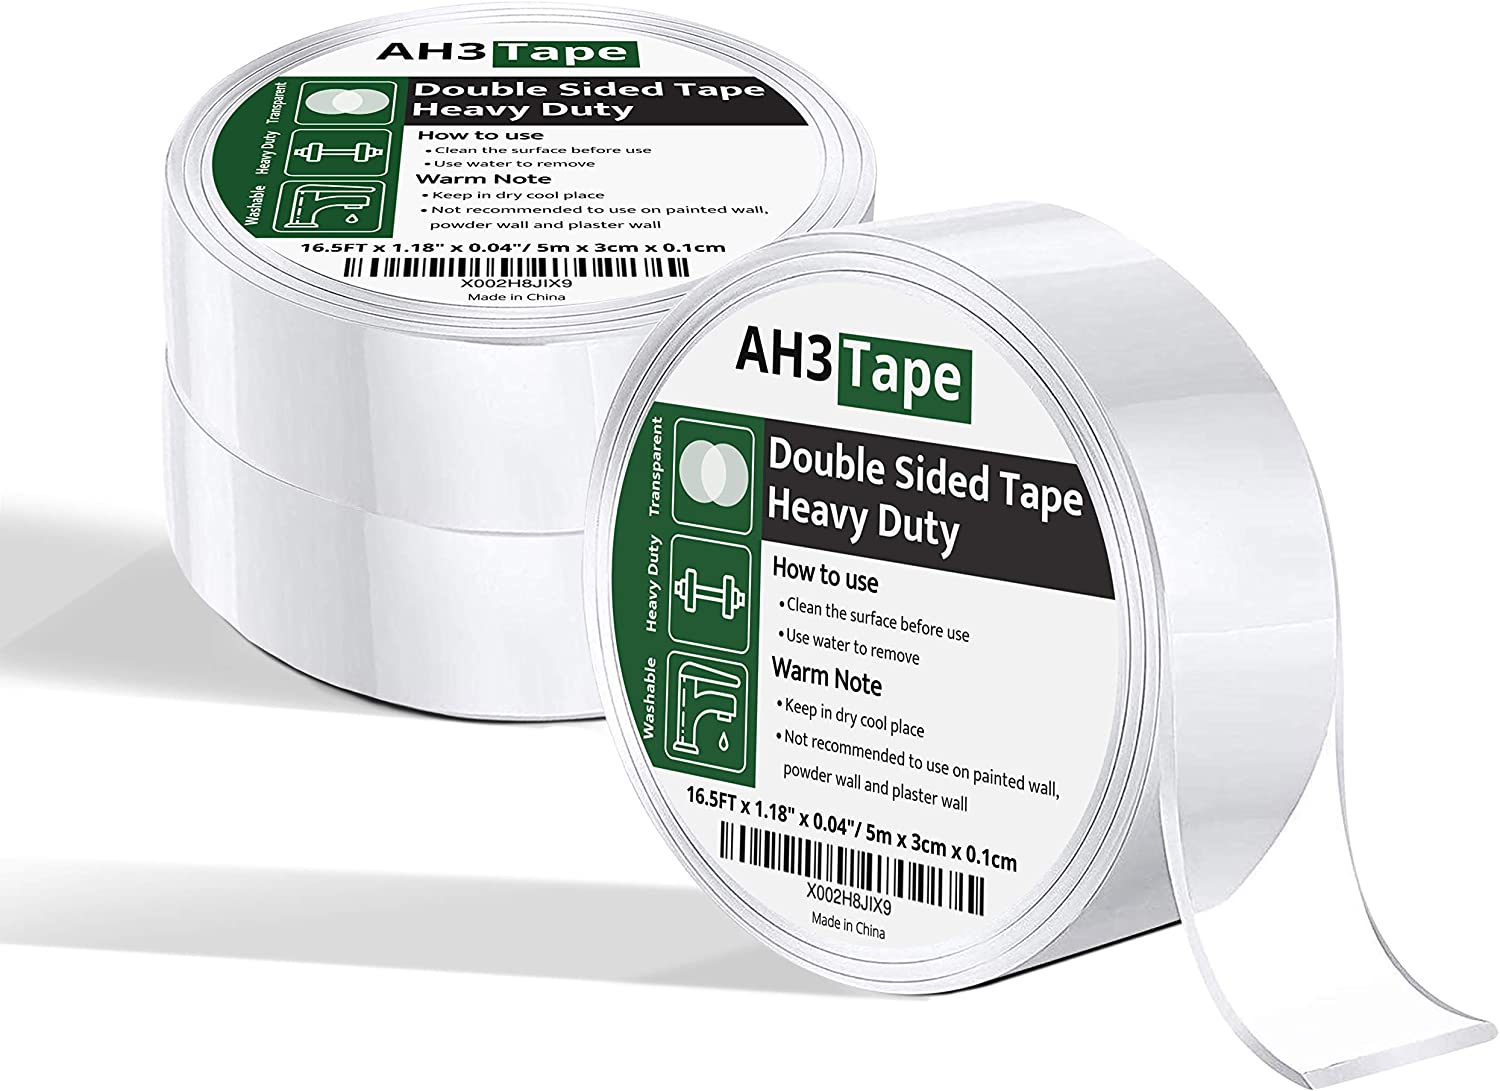 AH3 Tape 3 Rolls 49.5FT Nano Double Sided Tape for Walls - Transparent Removable Poster Tape - Picture Hanging Strips for Home Office Decoration & Organization - Alien Tape